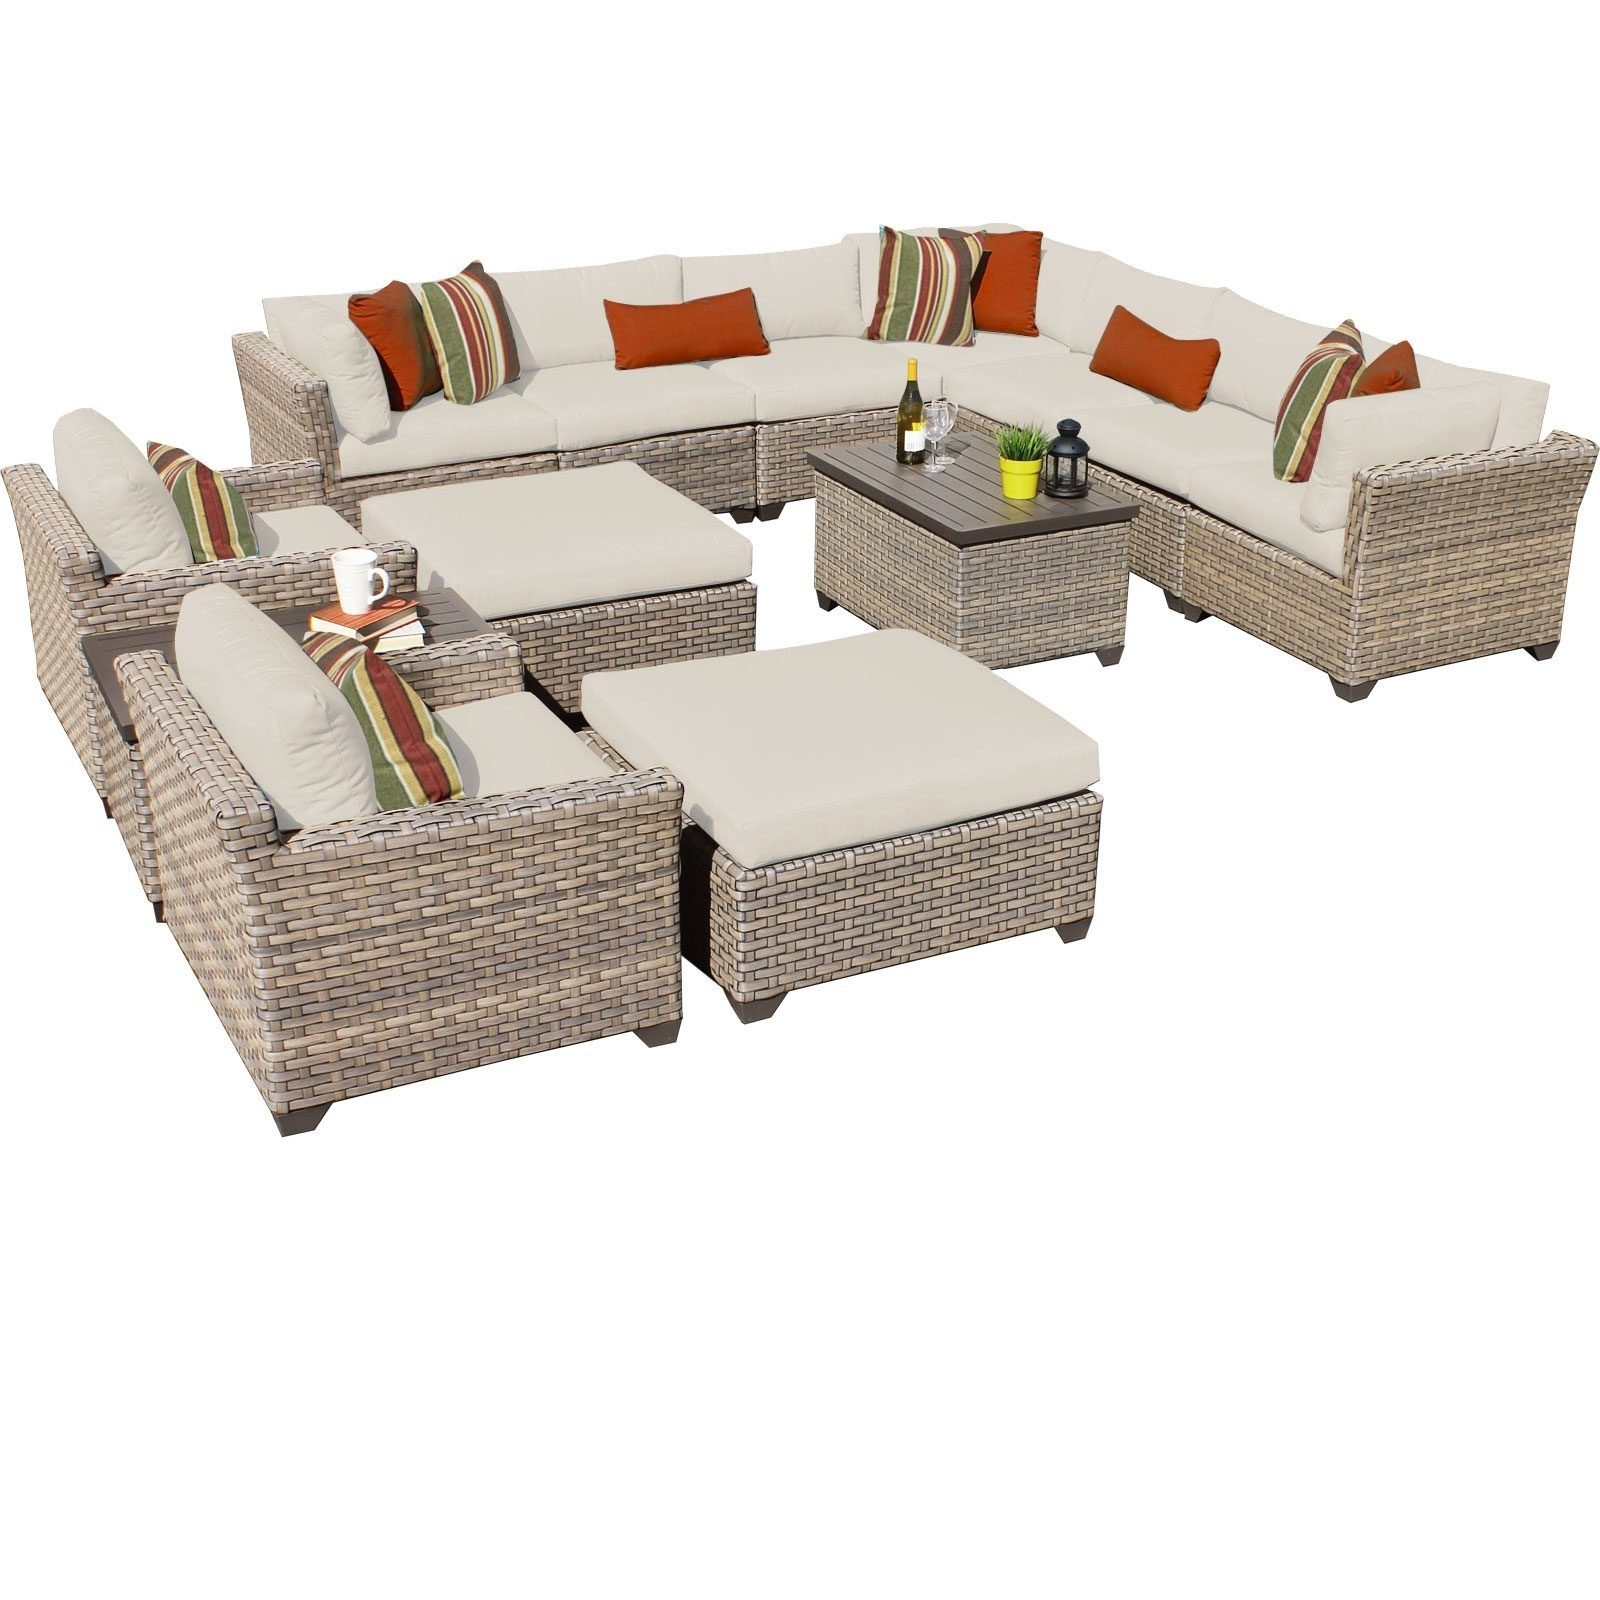 Walmart Patio Furniture Conversation Sets Within Widely Used 30 Luxury Walmart Patio Sets On Sale Ideas (View 19 of 20)